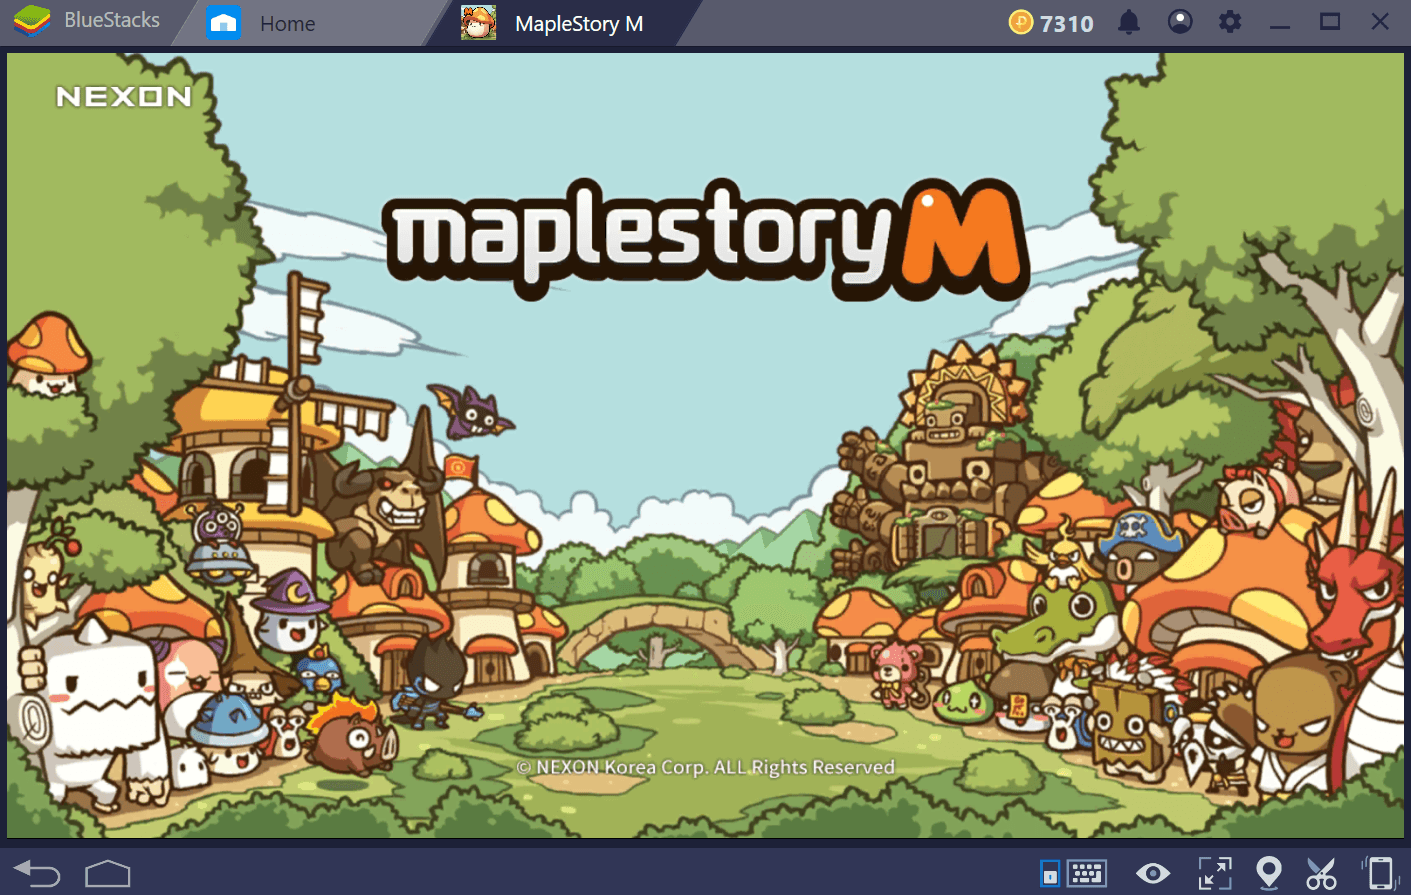 MapleStory M: mais rápido do que nunca com o novo Combo Key de BlueStacks!